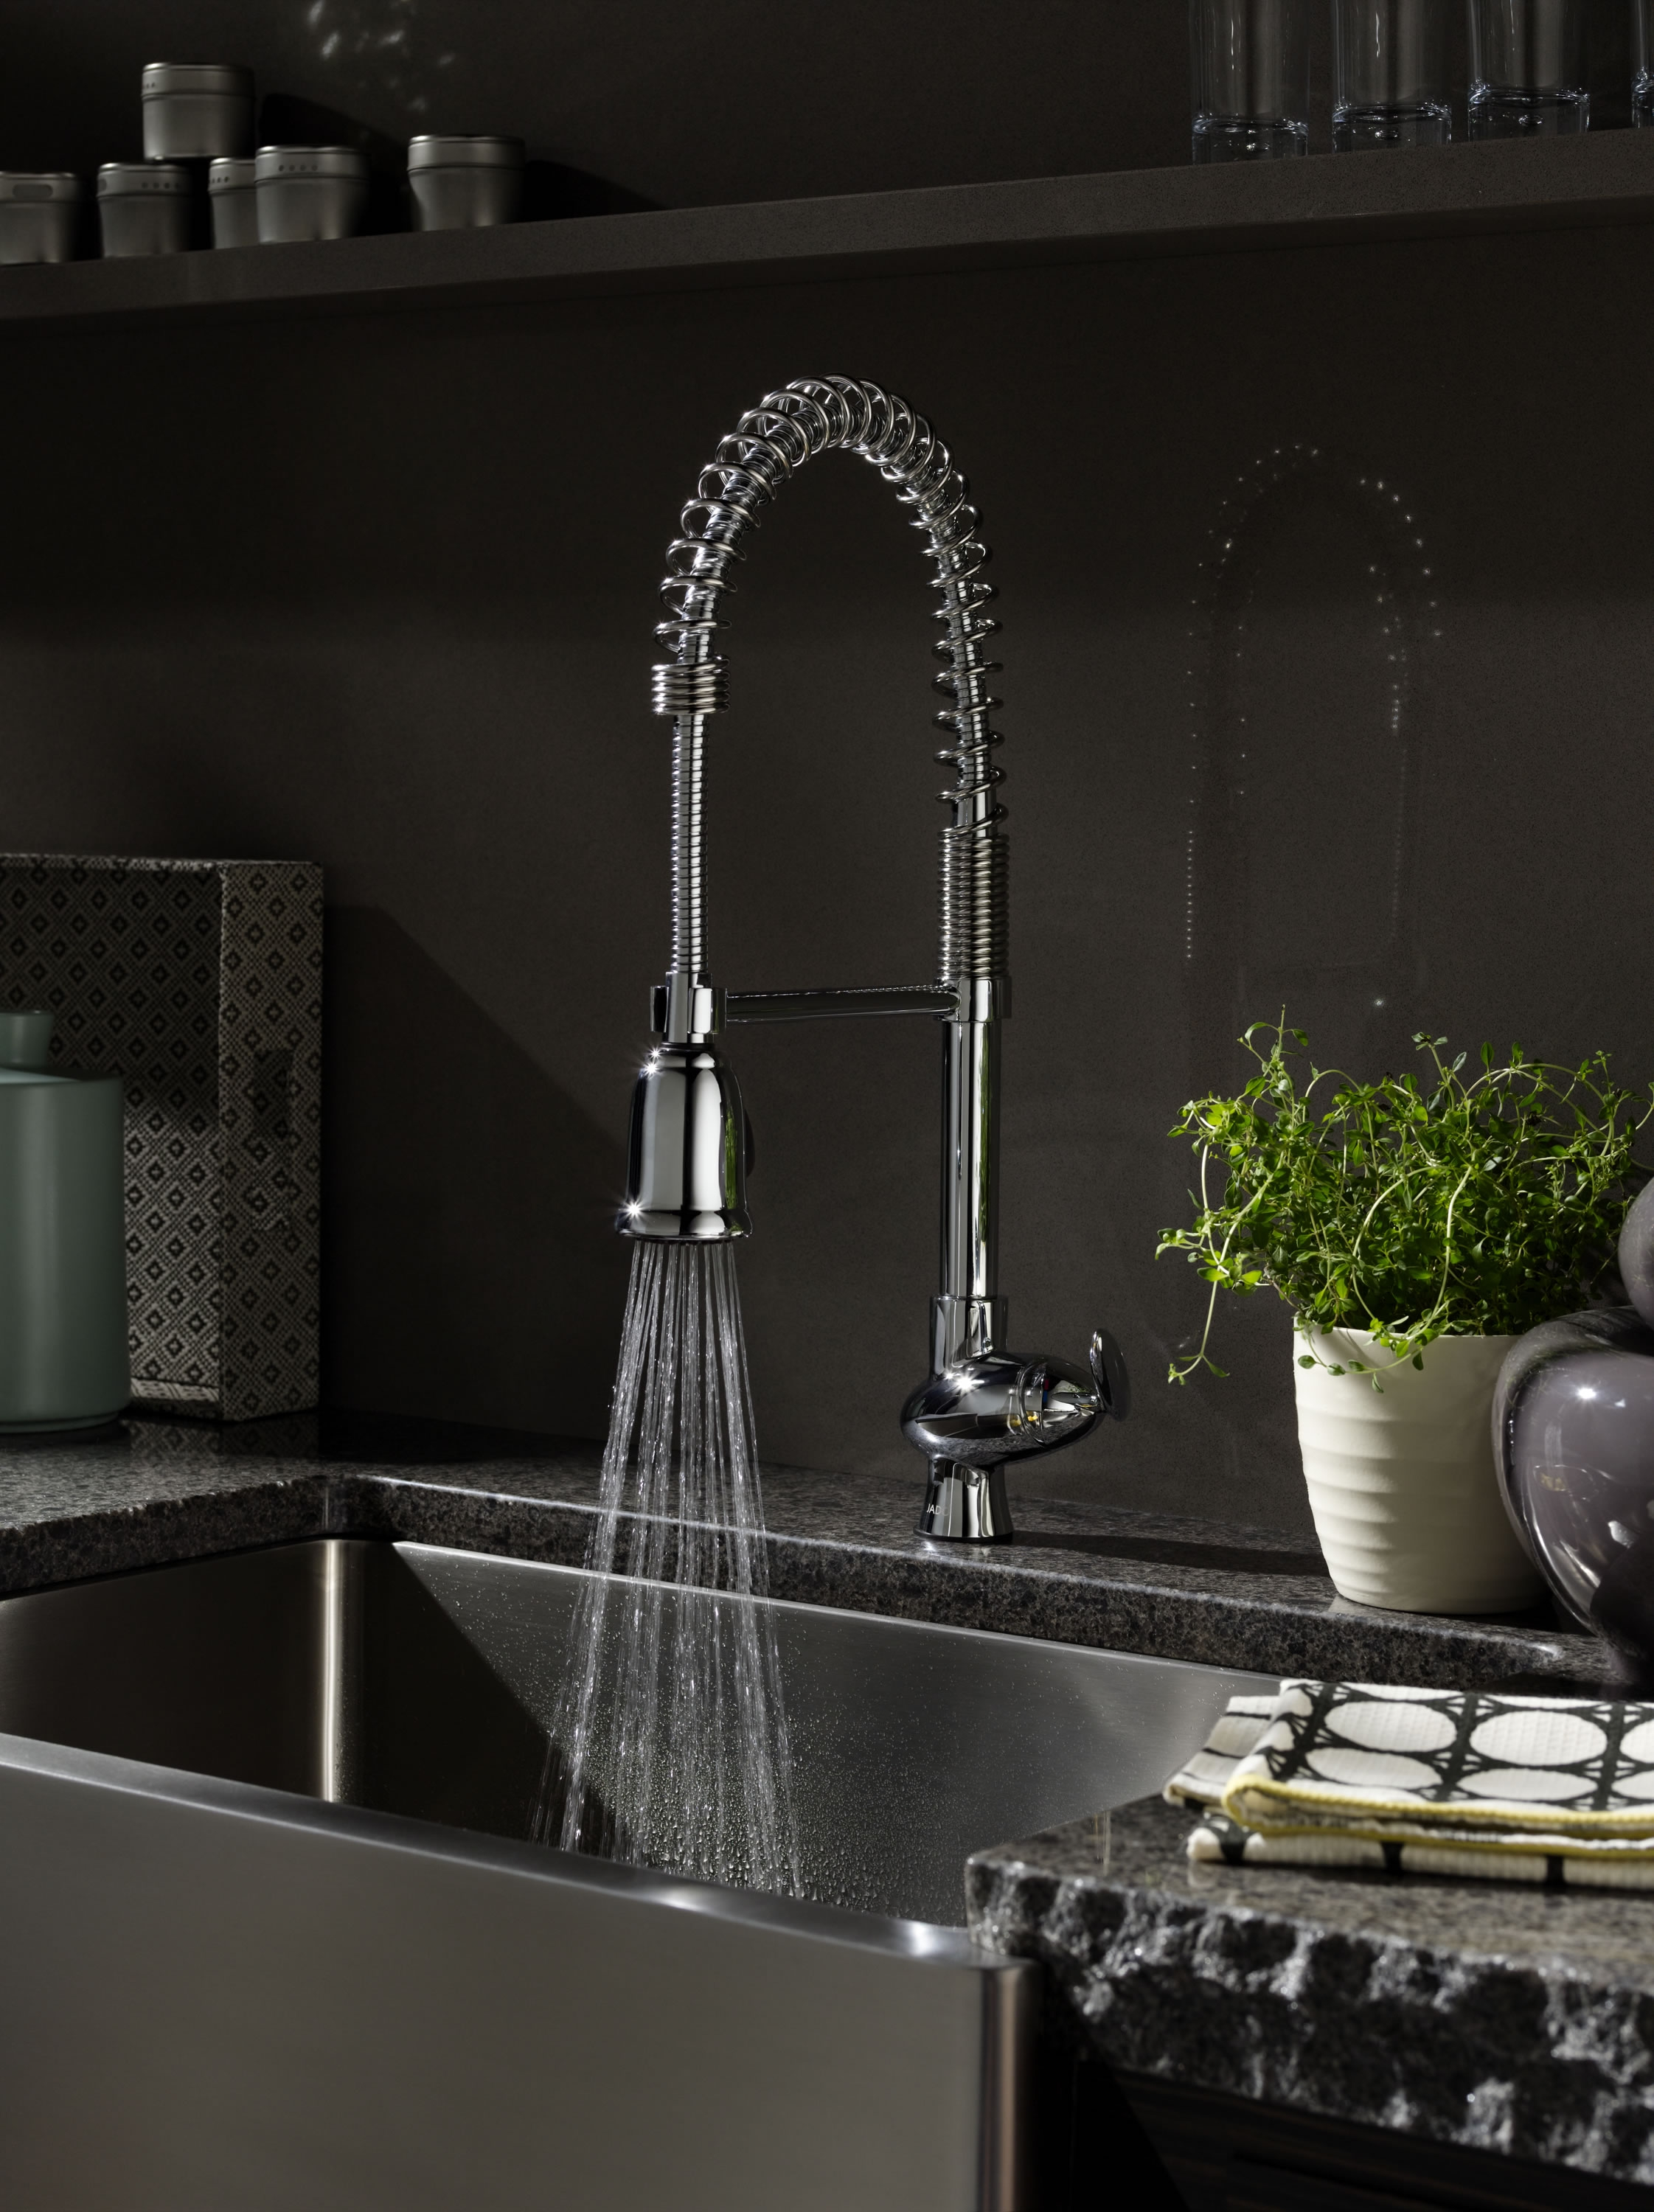 Ideas, industrial looking kitchen faucets industrial looking kitchen faucets best industrial kitchen faucet readingworks furniture 2243 x 3000  .